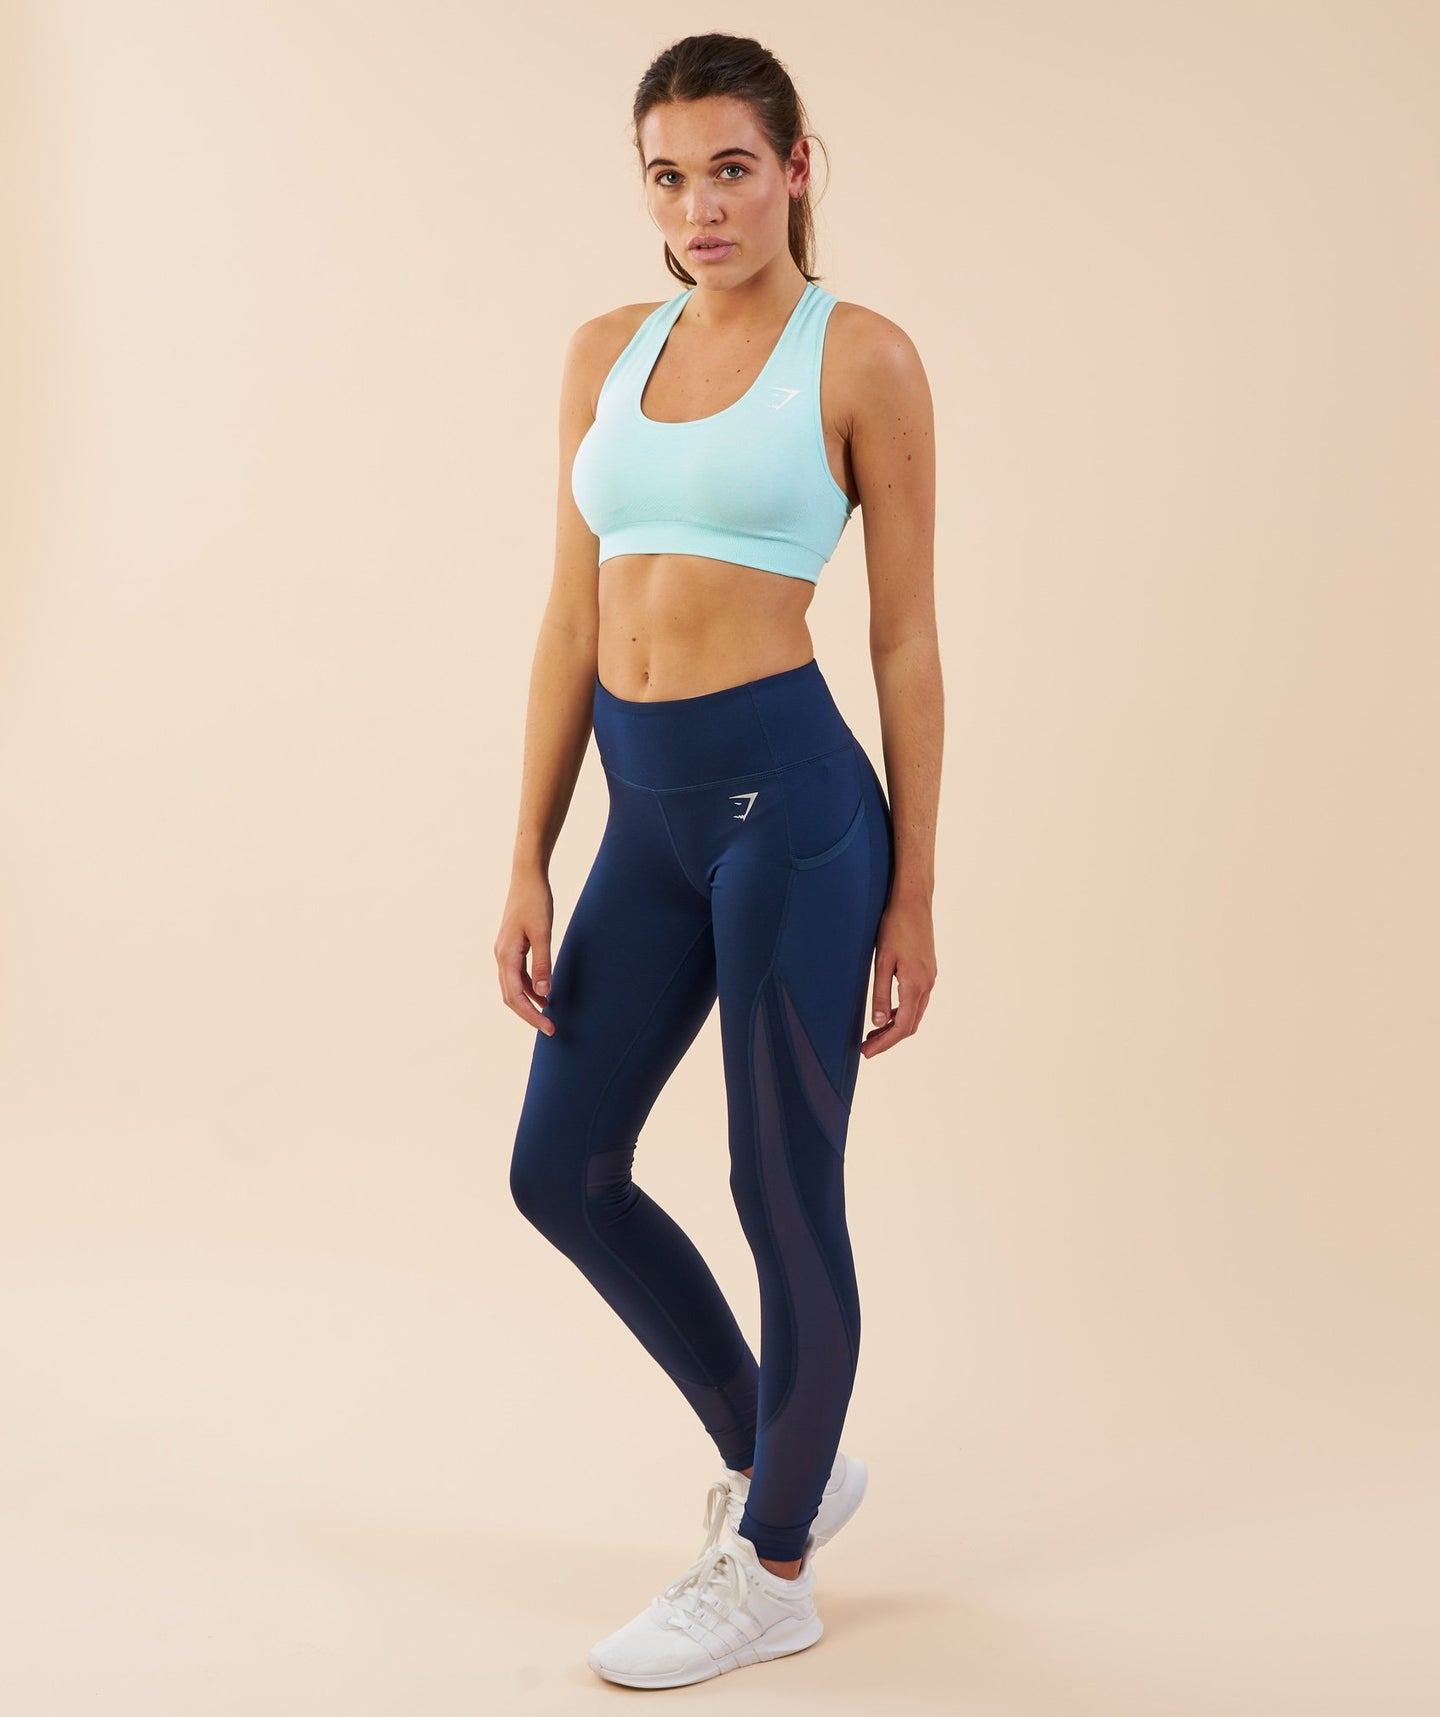 7b18e12de539e Gymshark is an exclusive activewear brand that makes workout clothing  enjoyable, comfortable, and relevant, one piece at a time. Choosing your  gear can be ...